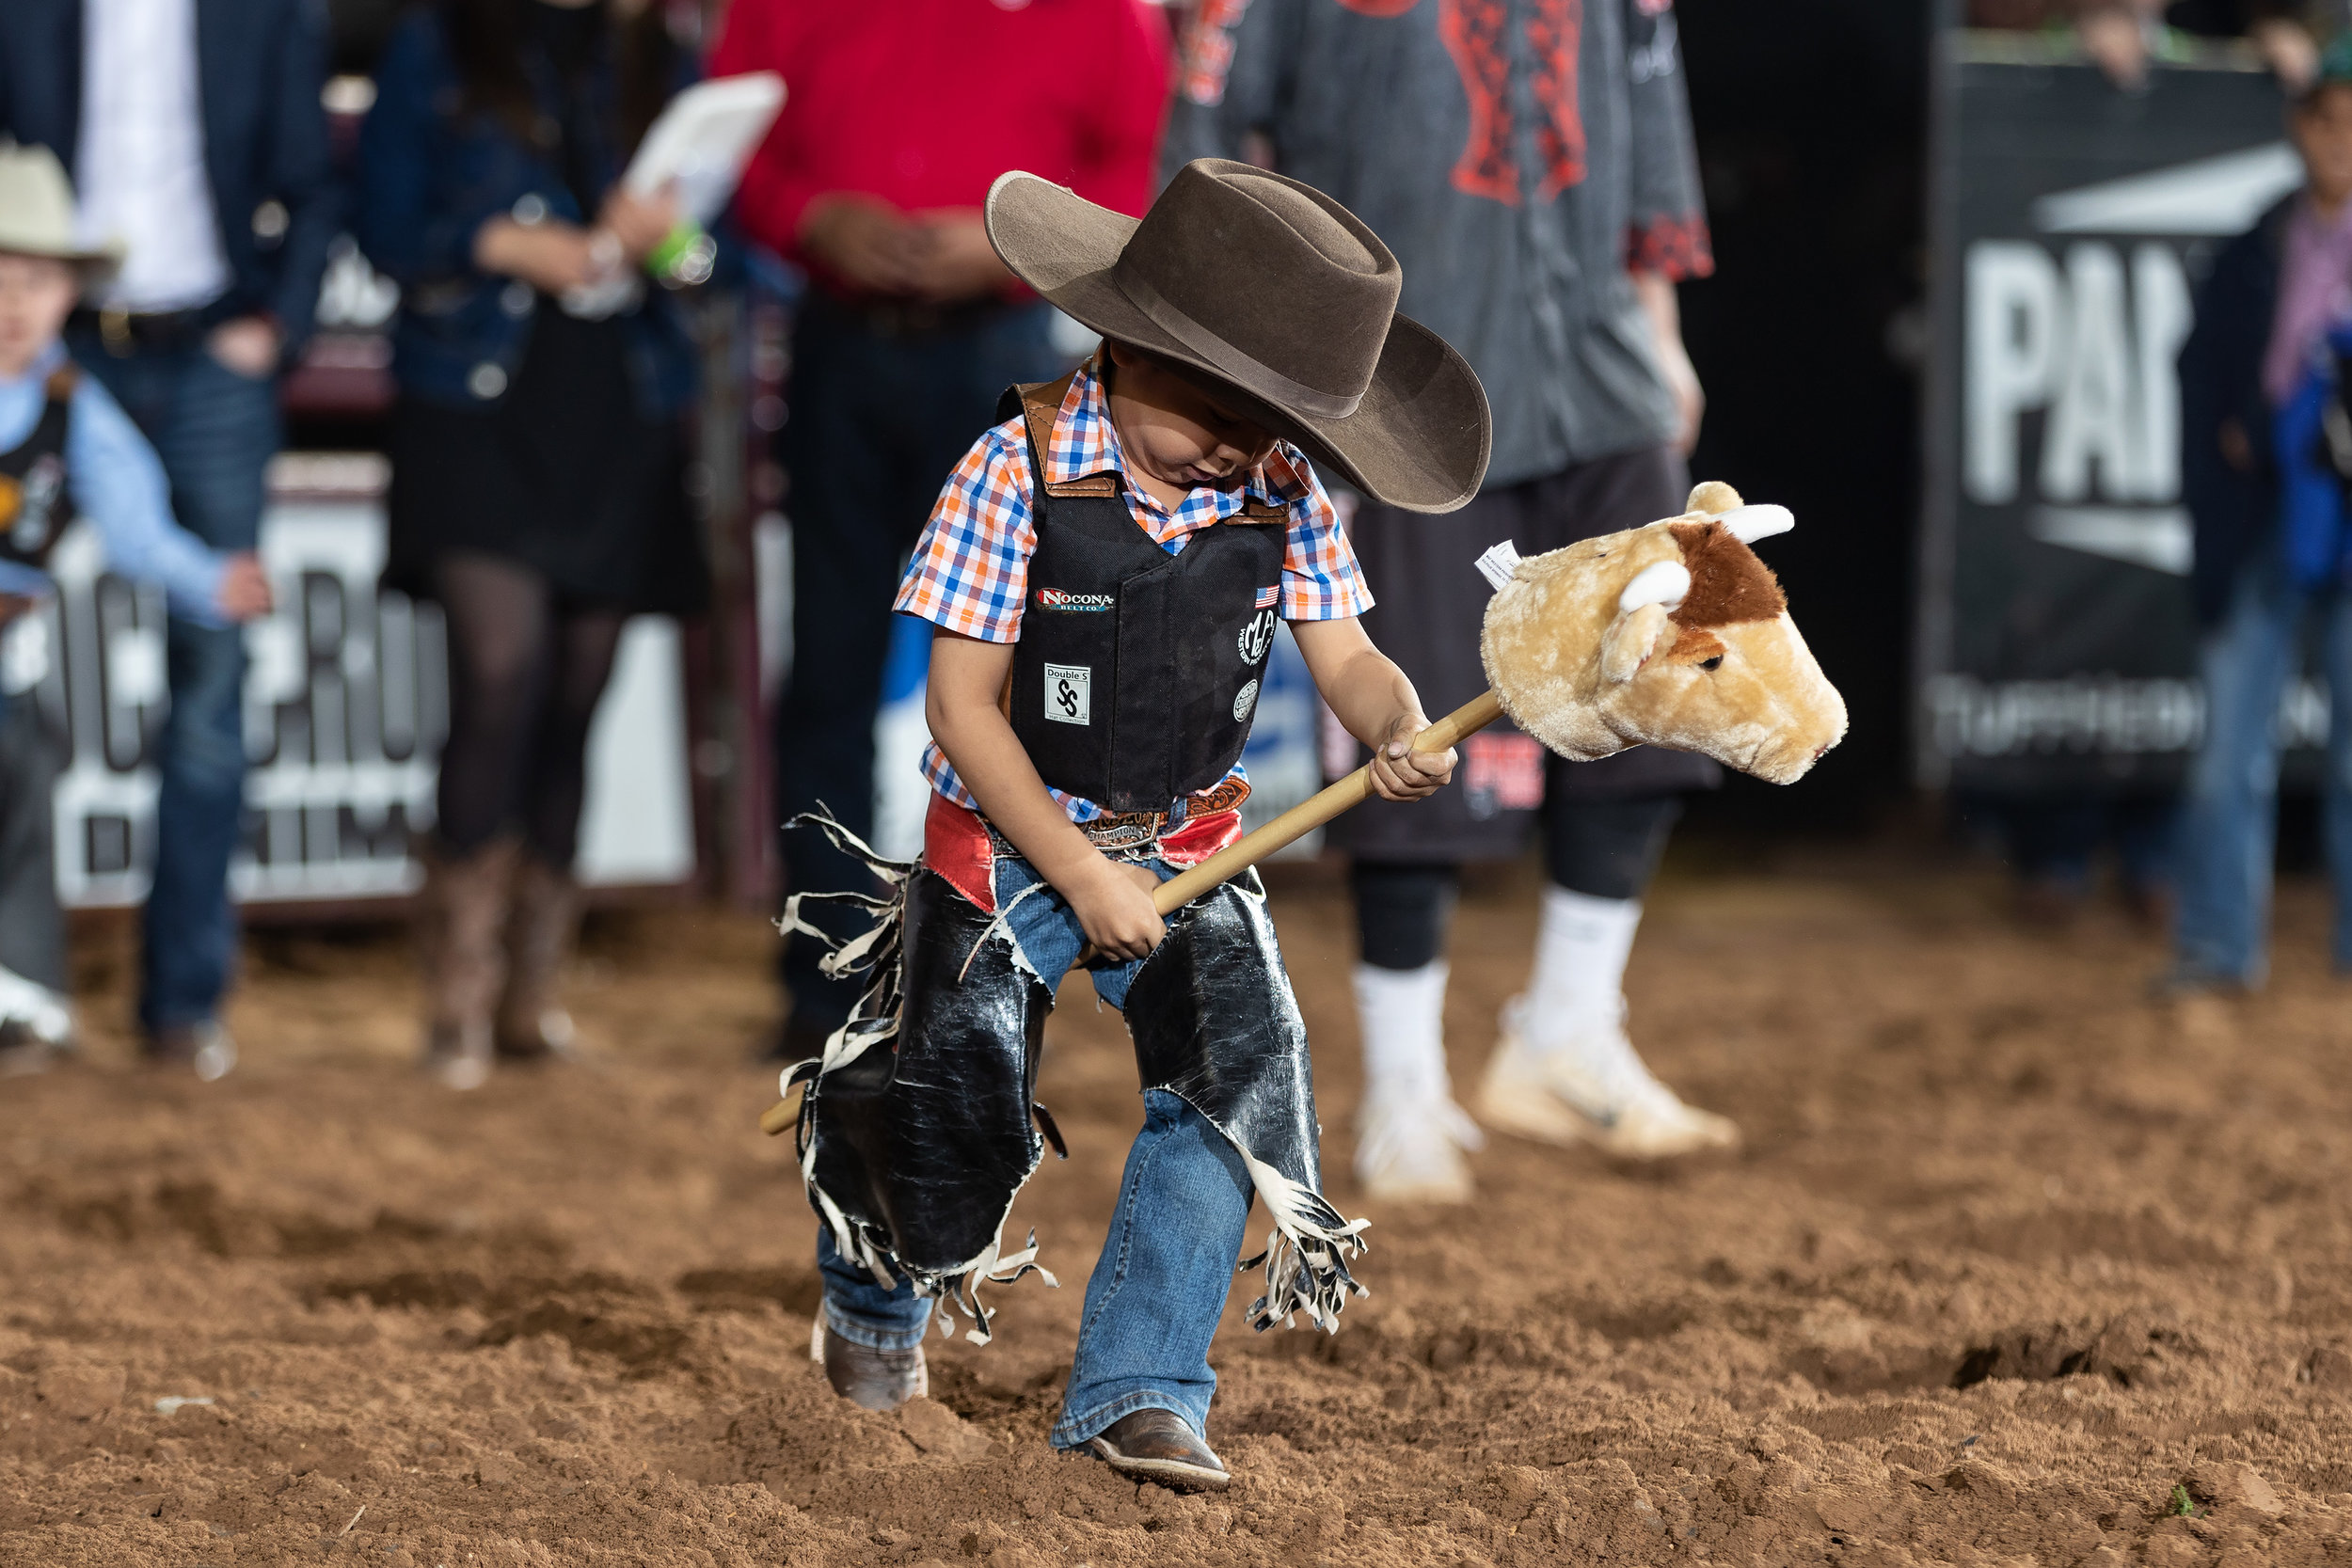 Teachers Federal Credit Union Stick Bull Riding Champion Reato Martinez, 4 years old